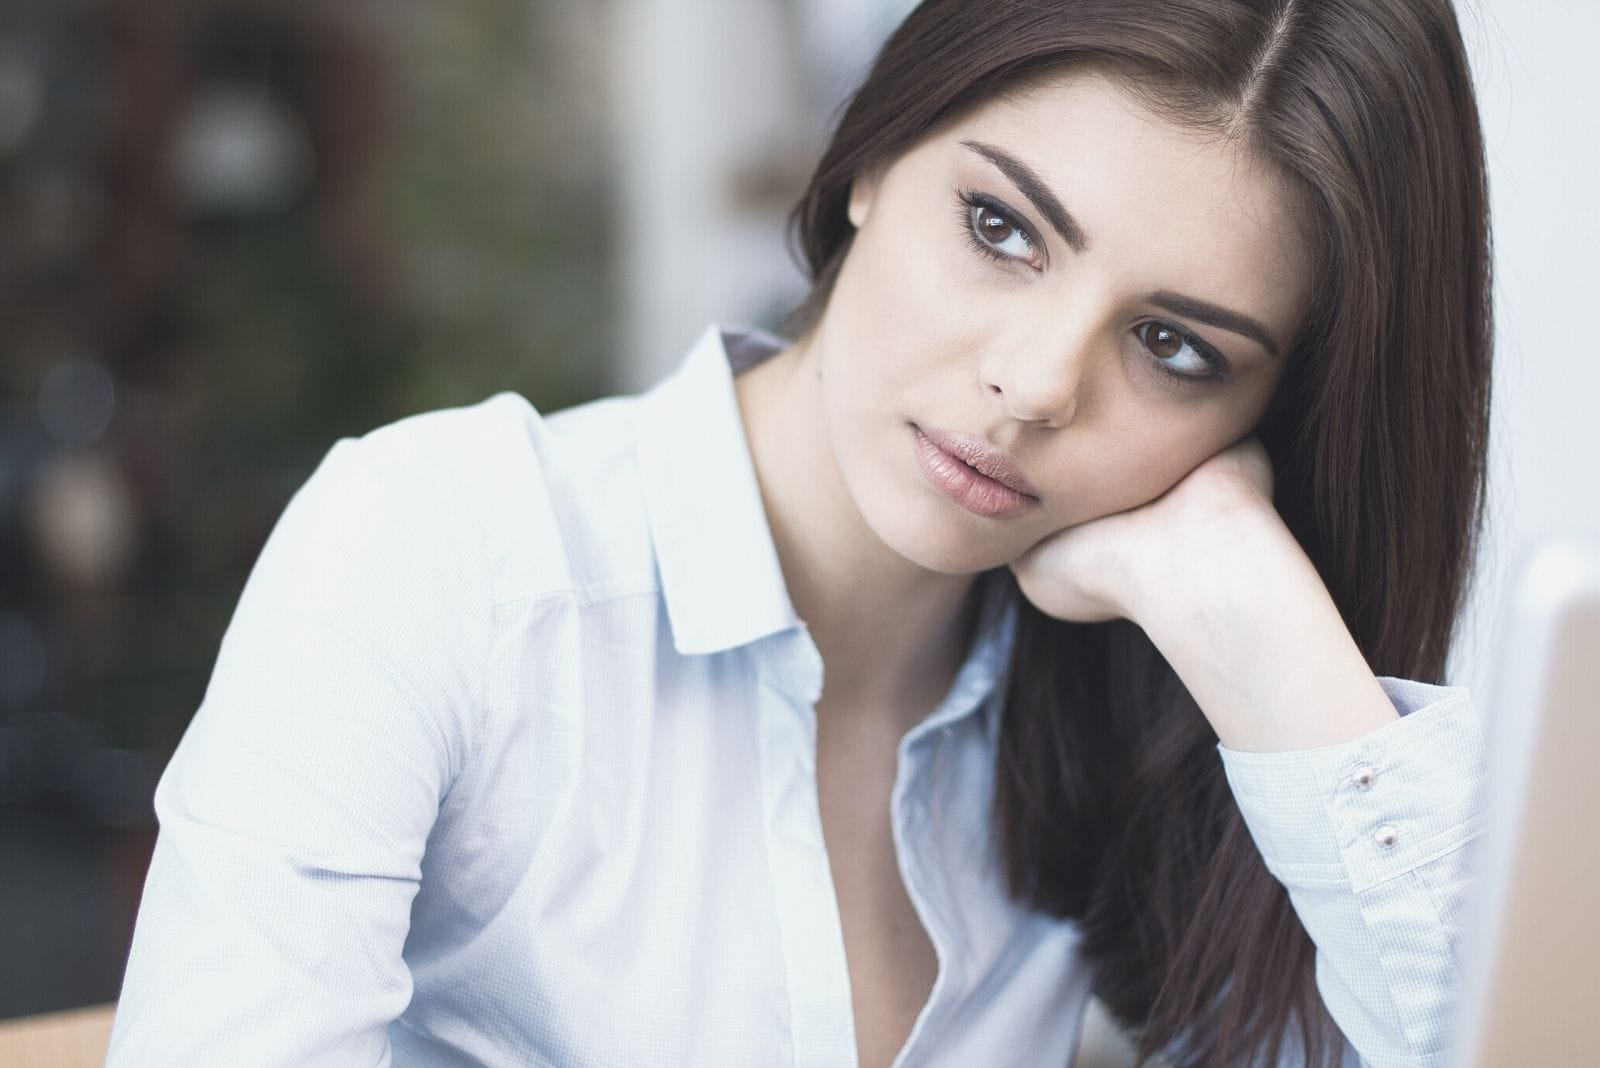 pensive businesswoman looking away and leaning her head to her hand